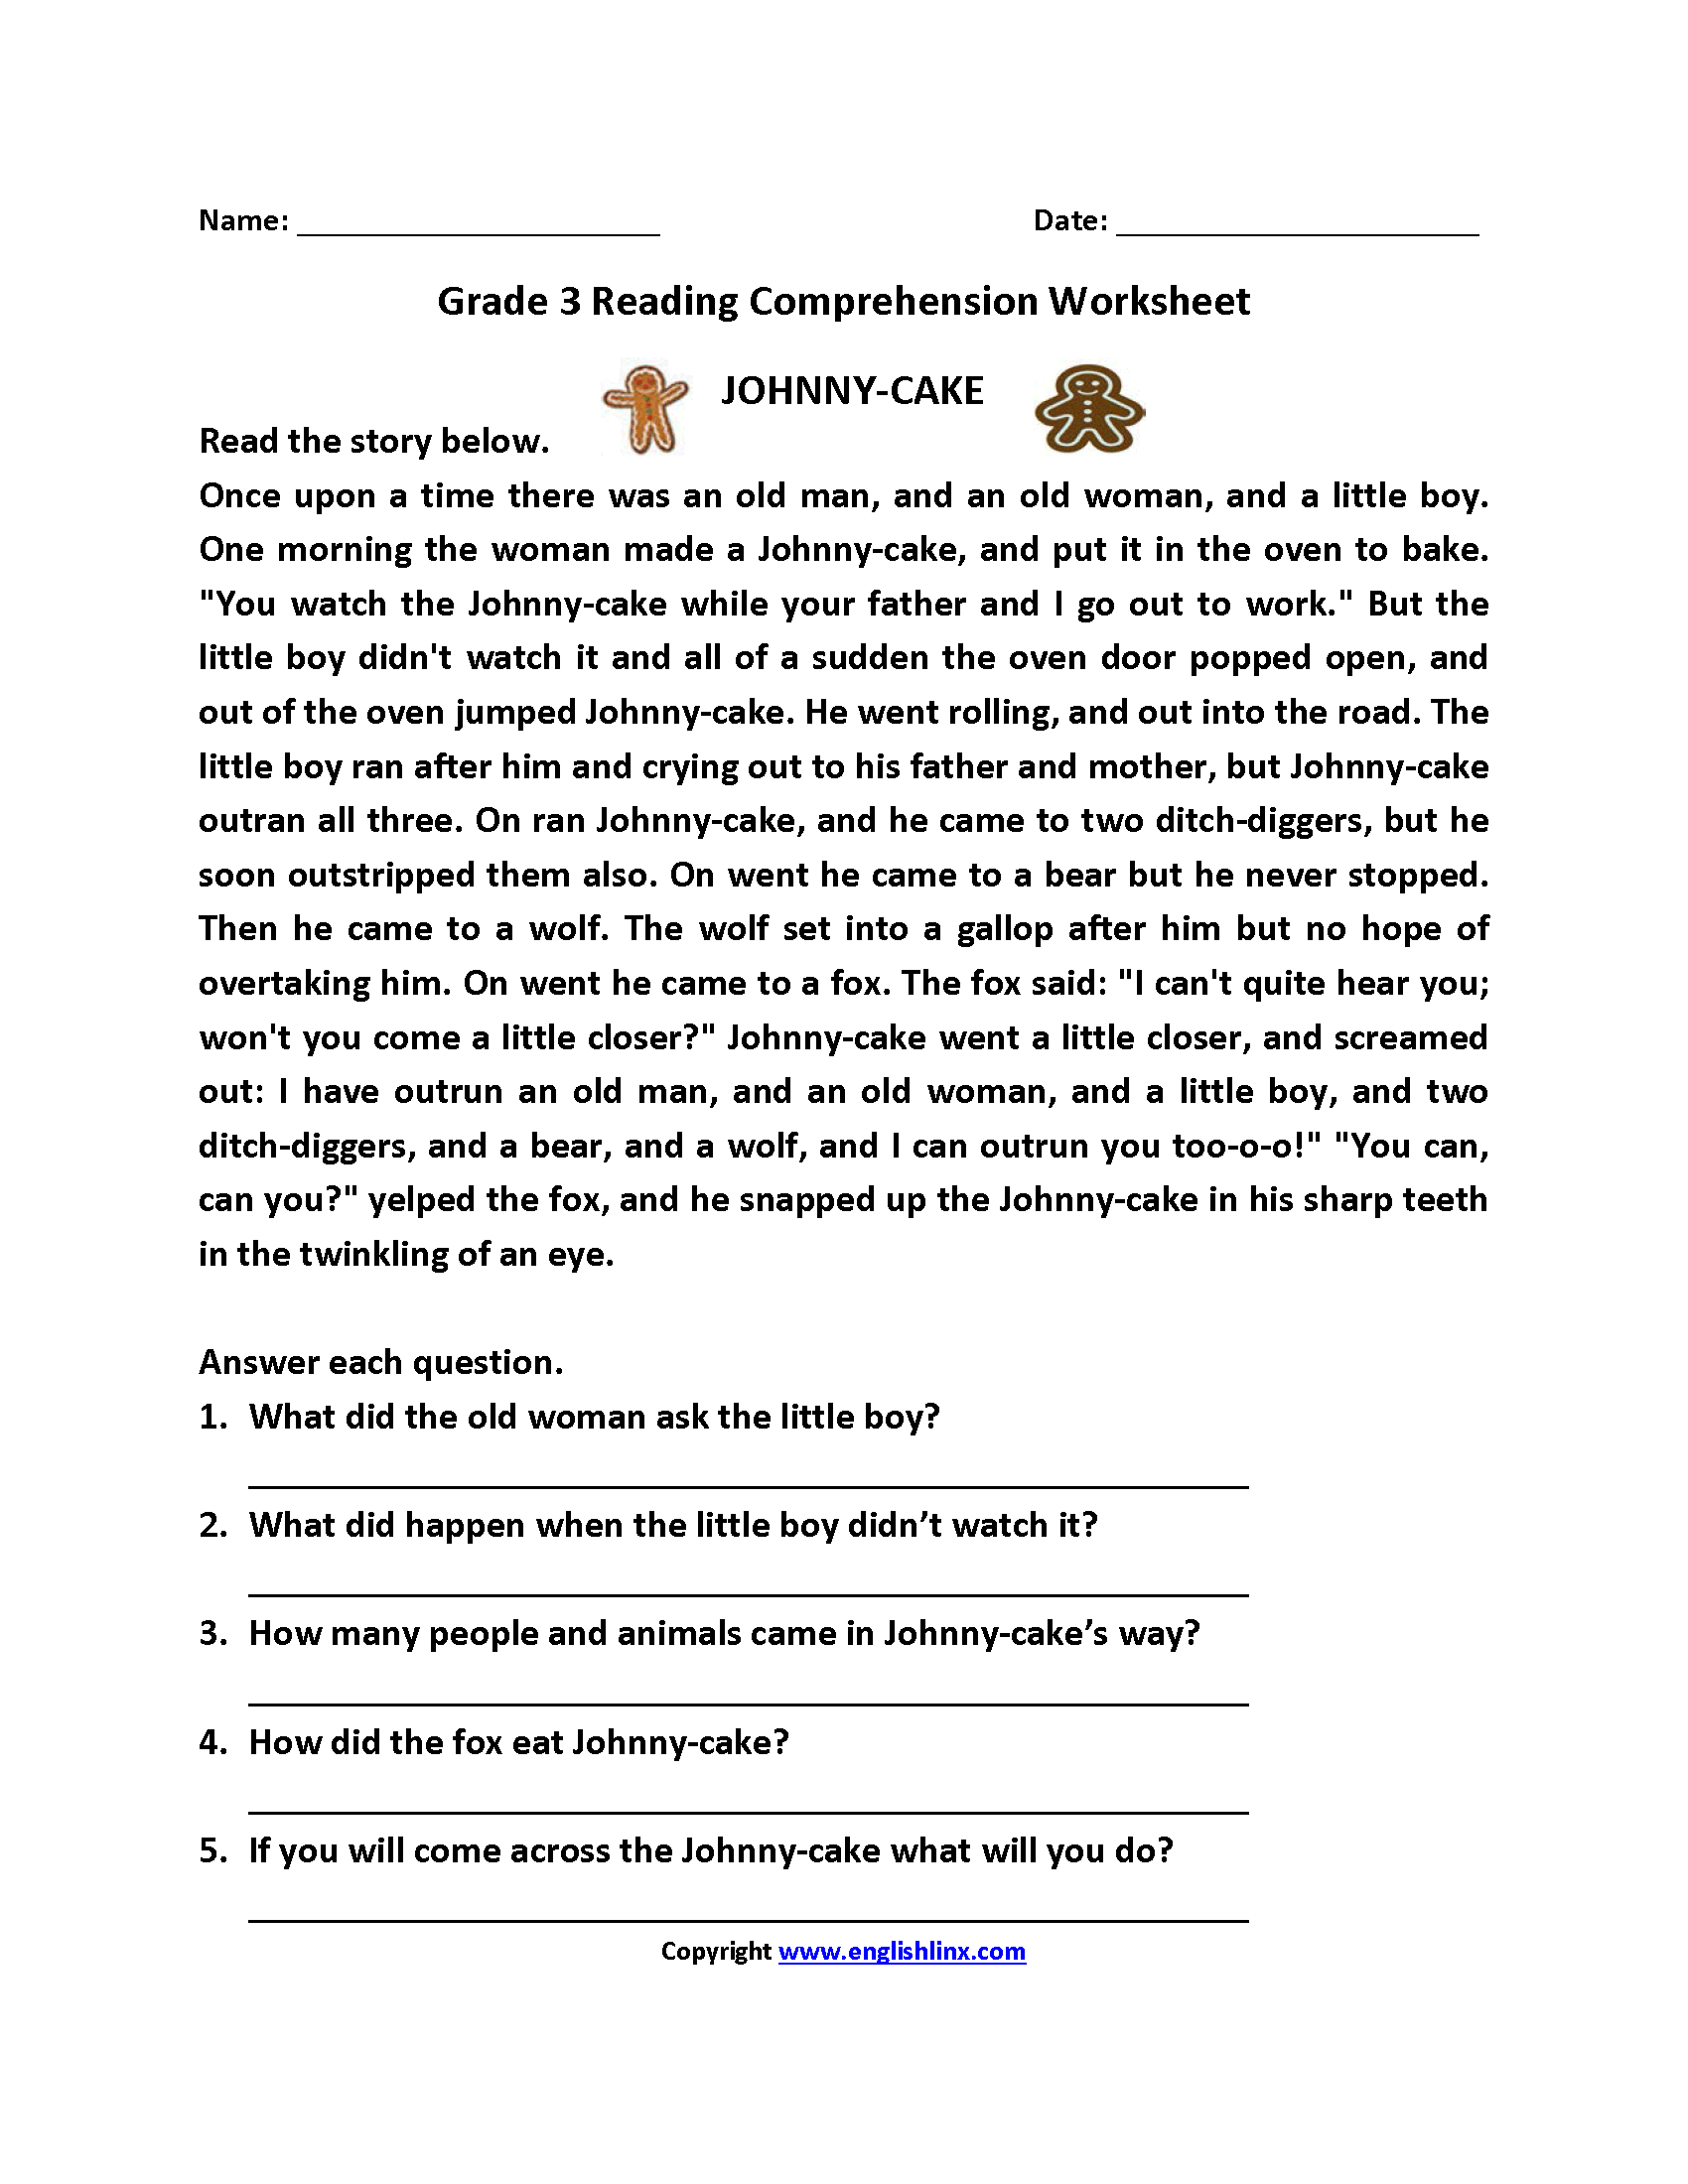 Reading Worksheets | Third Grade Reading Worksheets - Free Printable Reading Comprehension Worksheets For 3Rd Grade